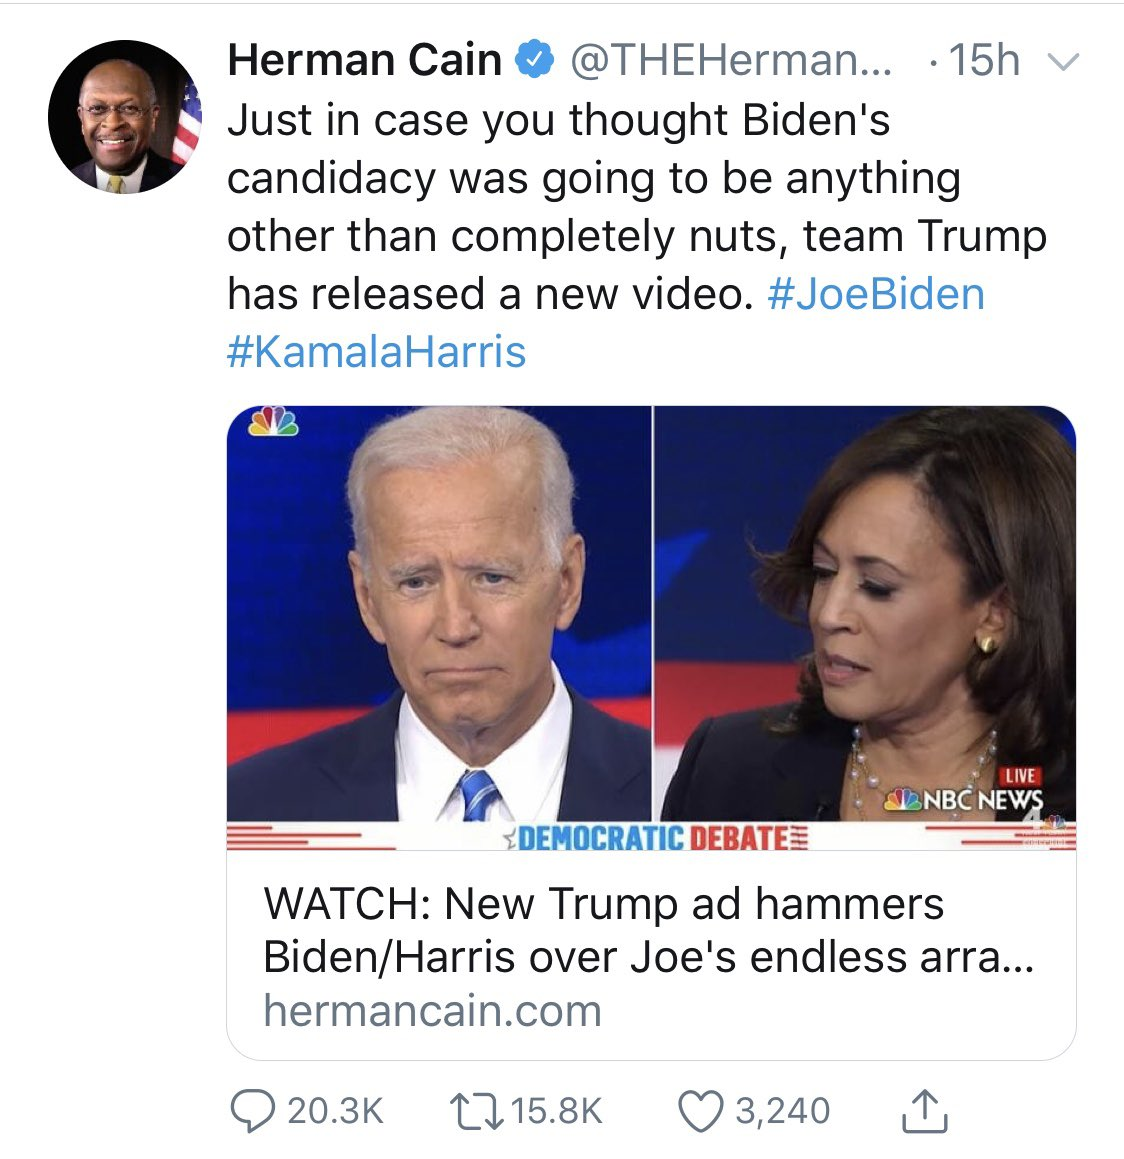 Herman Cain died from COVID-19 two weeks ago. Why is he still tweeting?